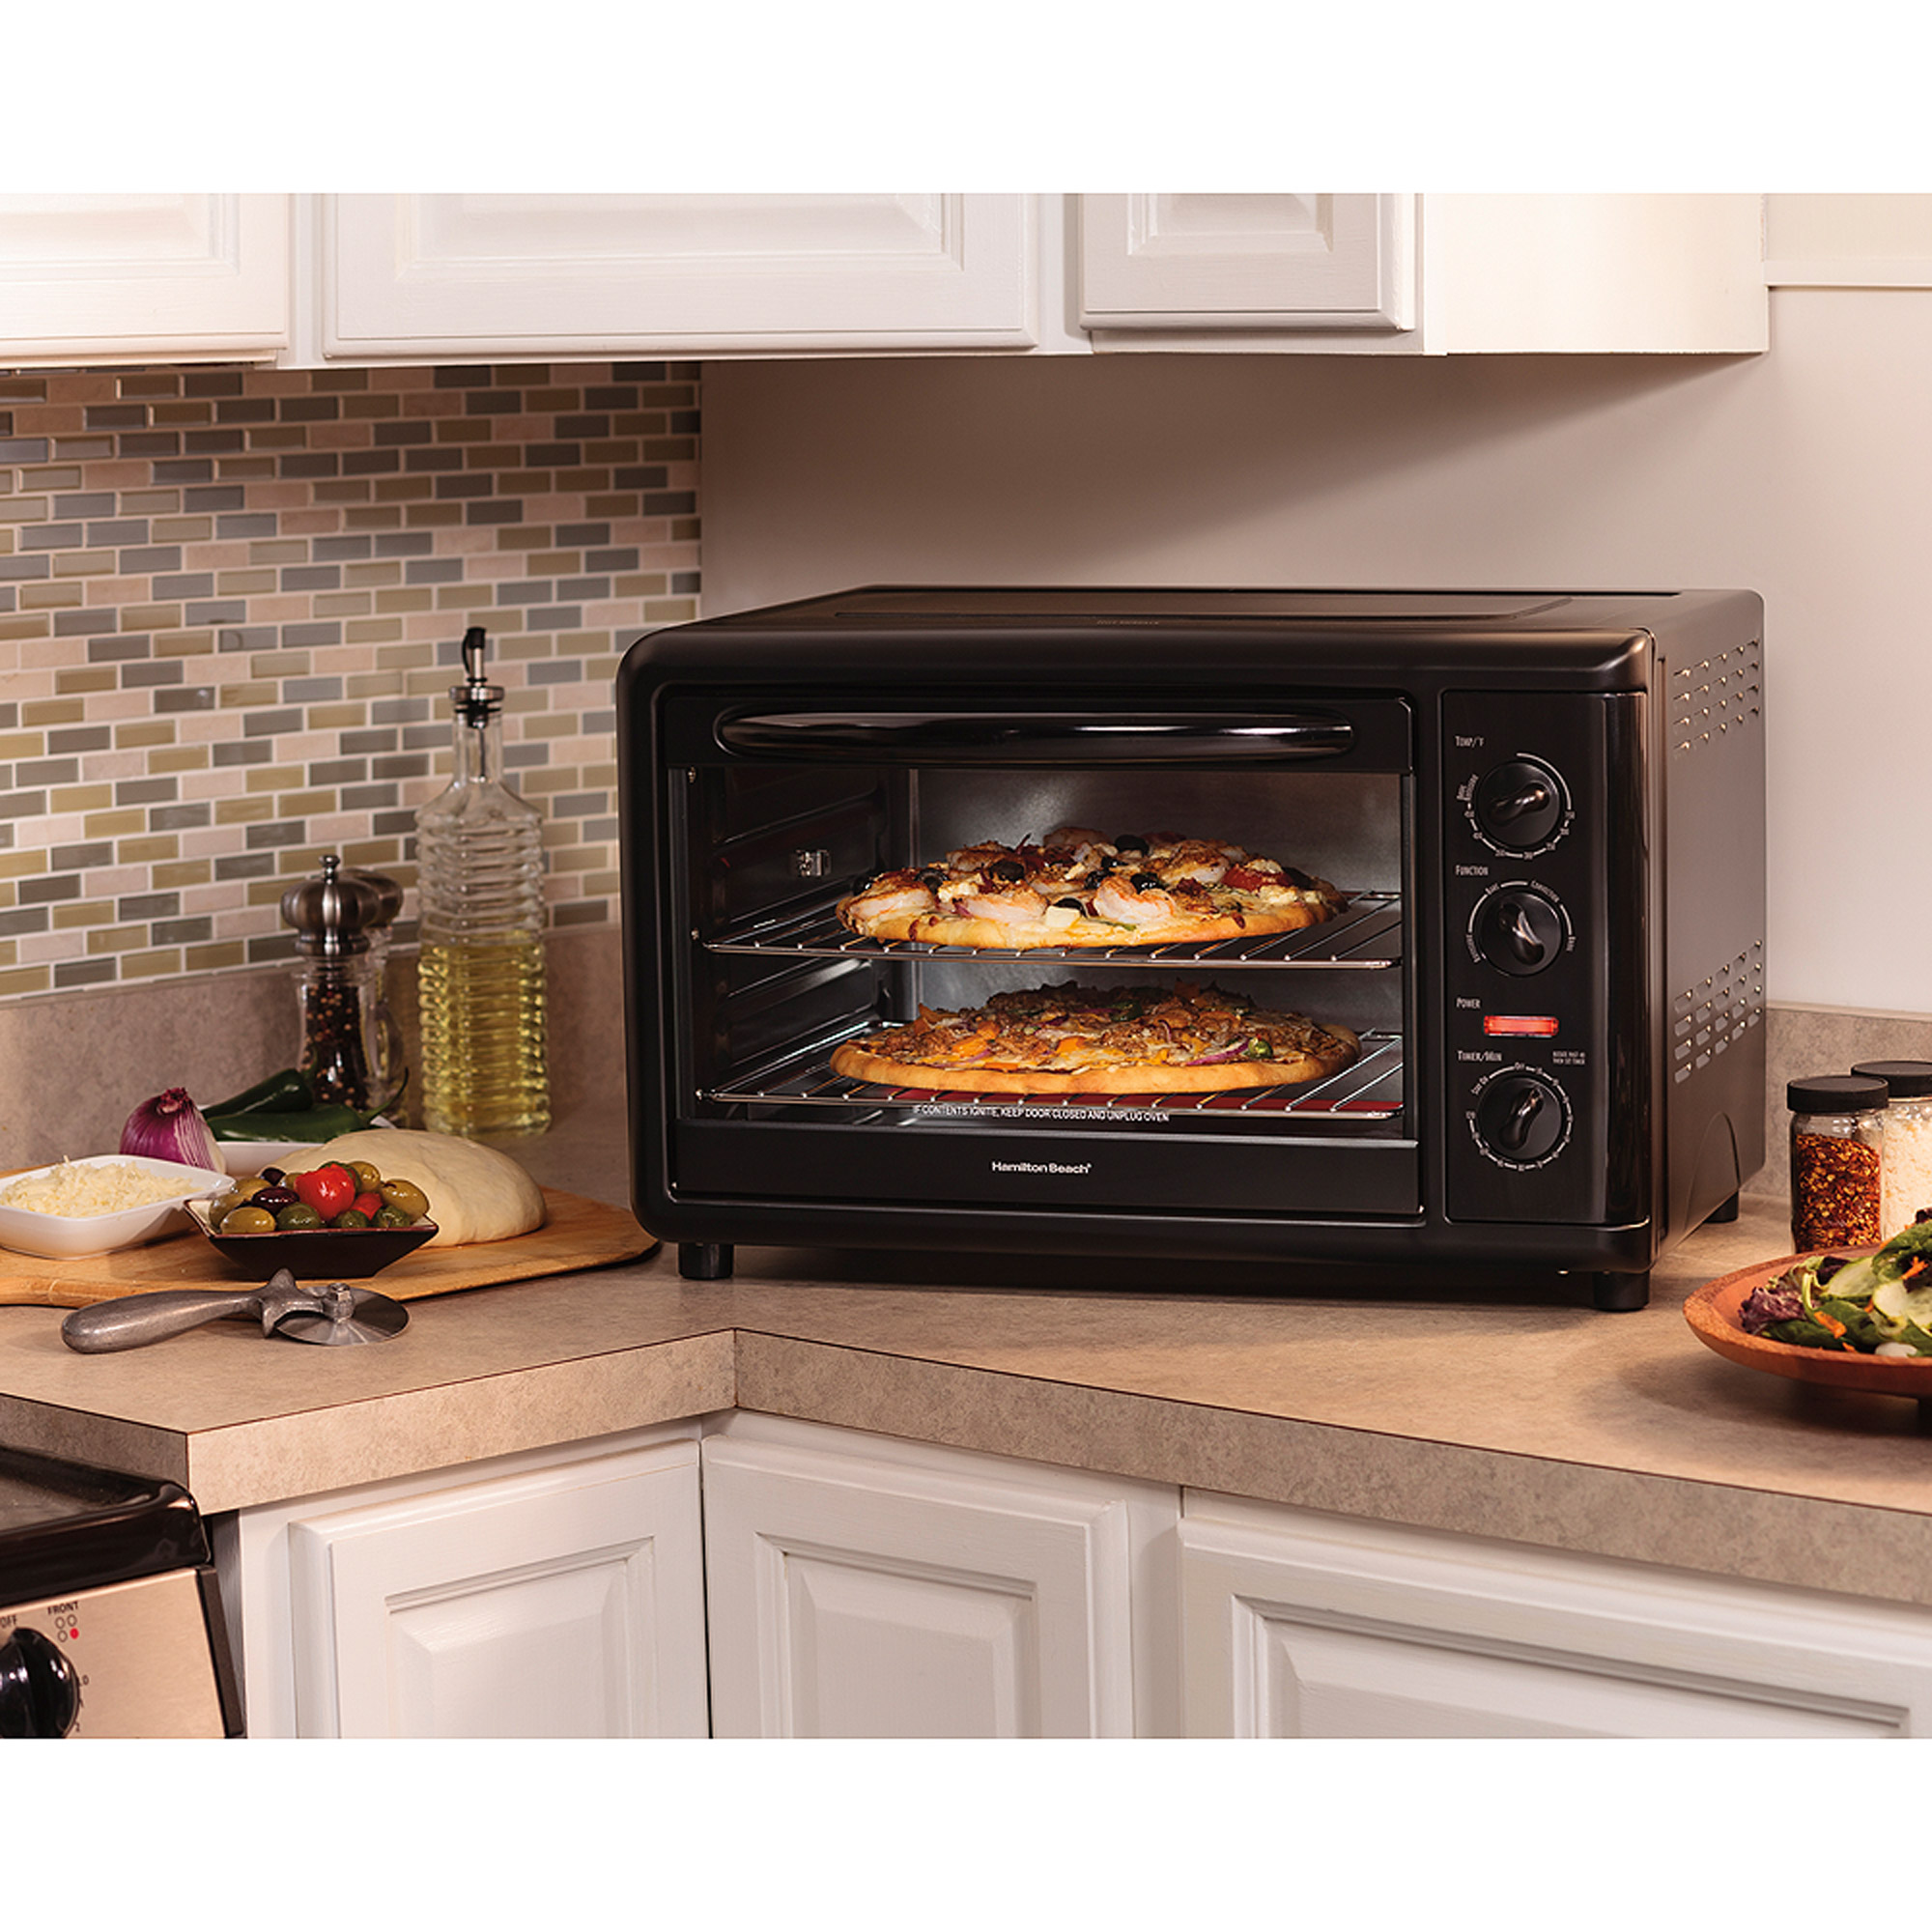 hamilton beach countertop toaster oven with convection model 31121a walmartcom - Countertop Pizza Oven